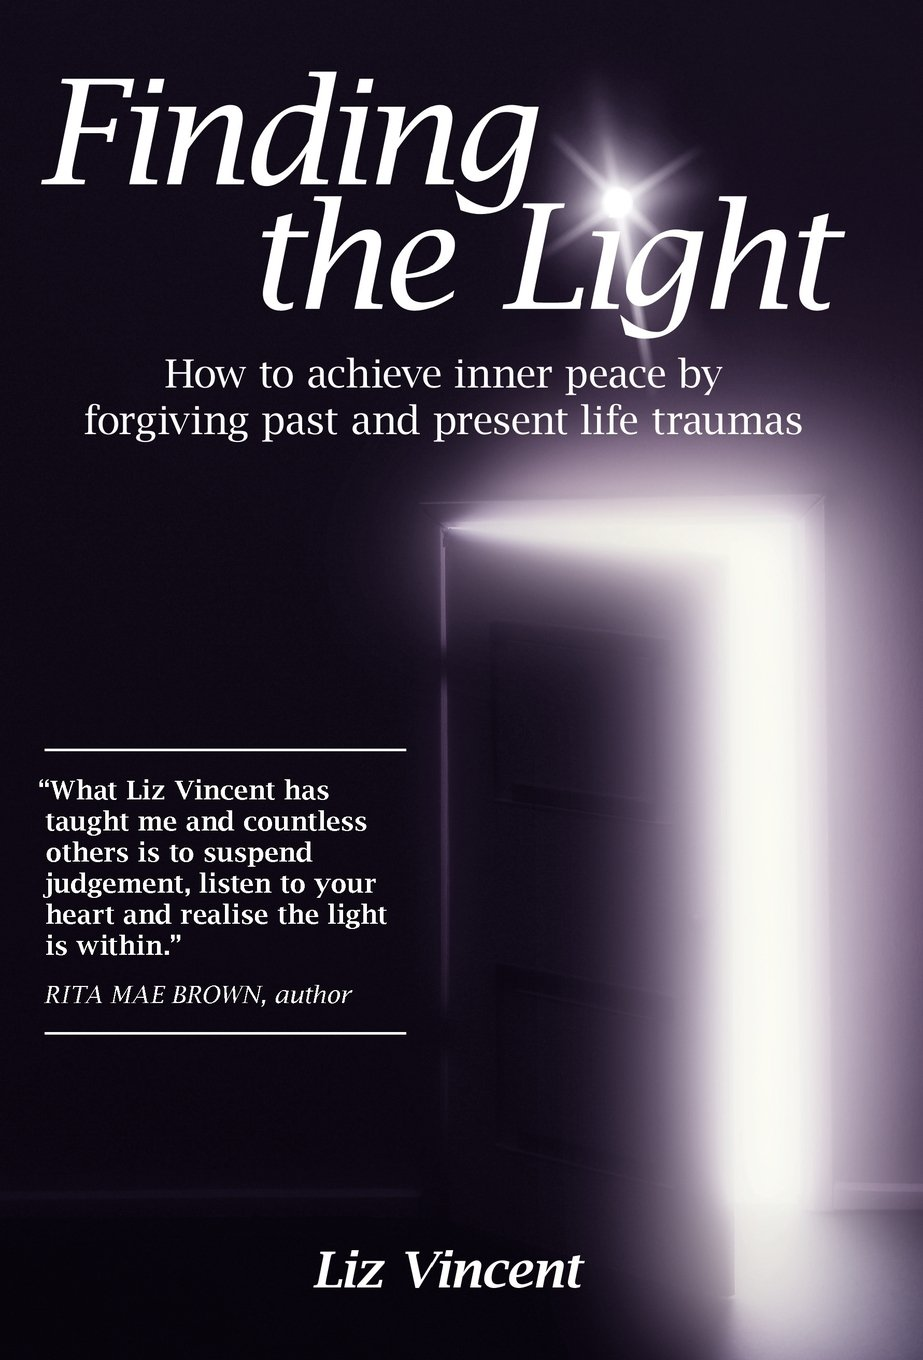 Finding the Light: How to Achieve Inner Peace by Forgiving Past and Present Life Traumas ebook